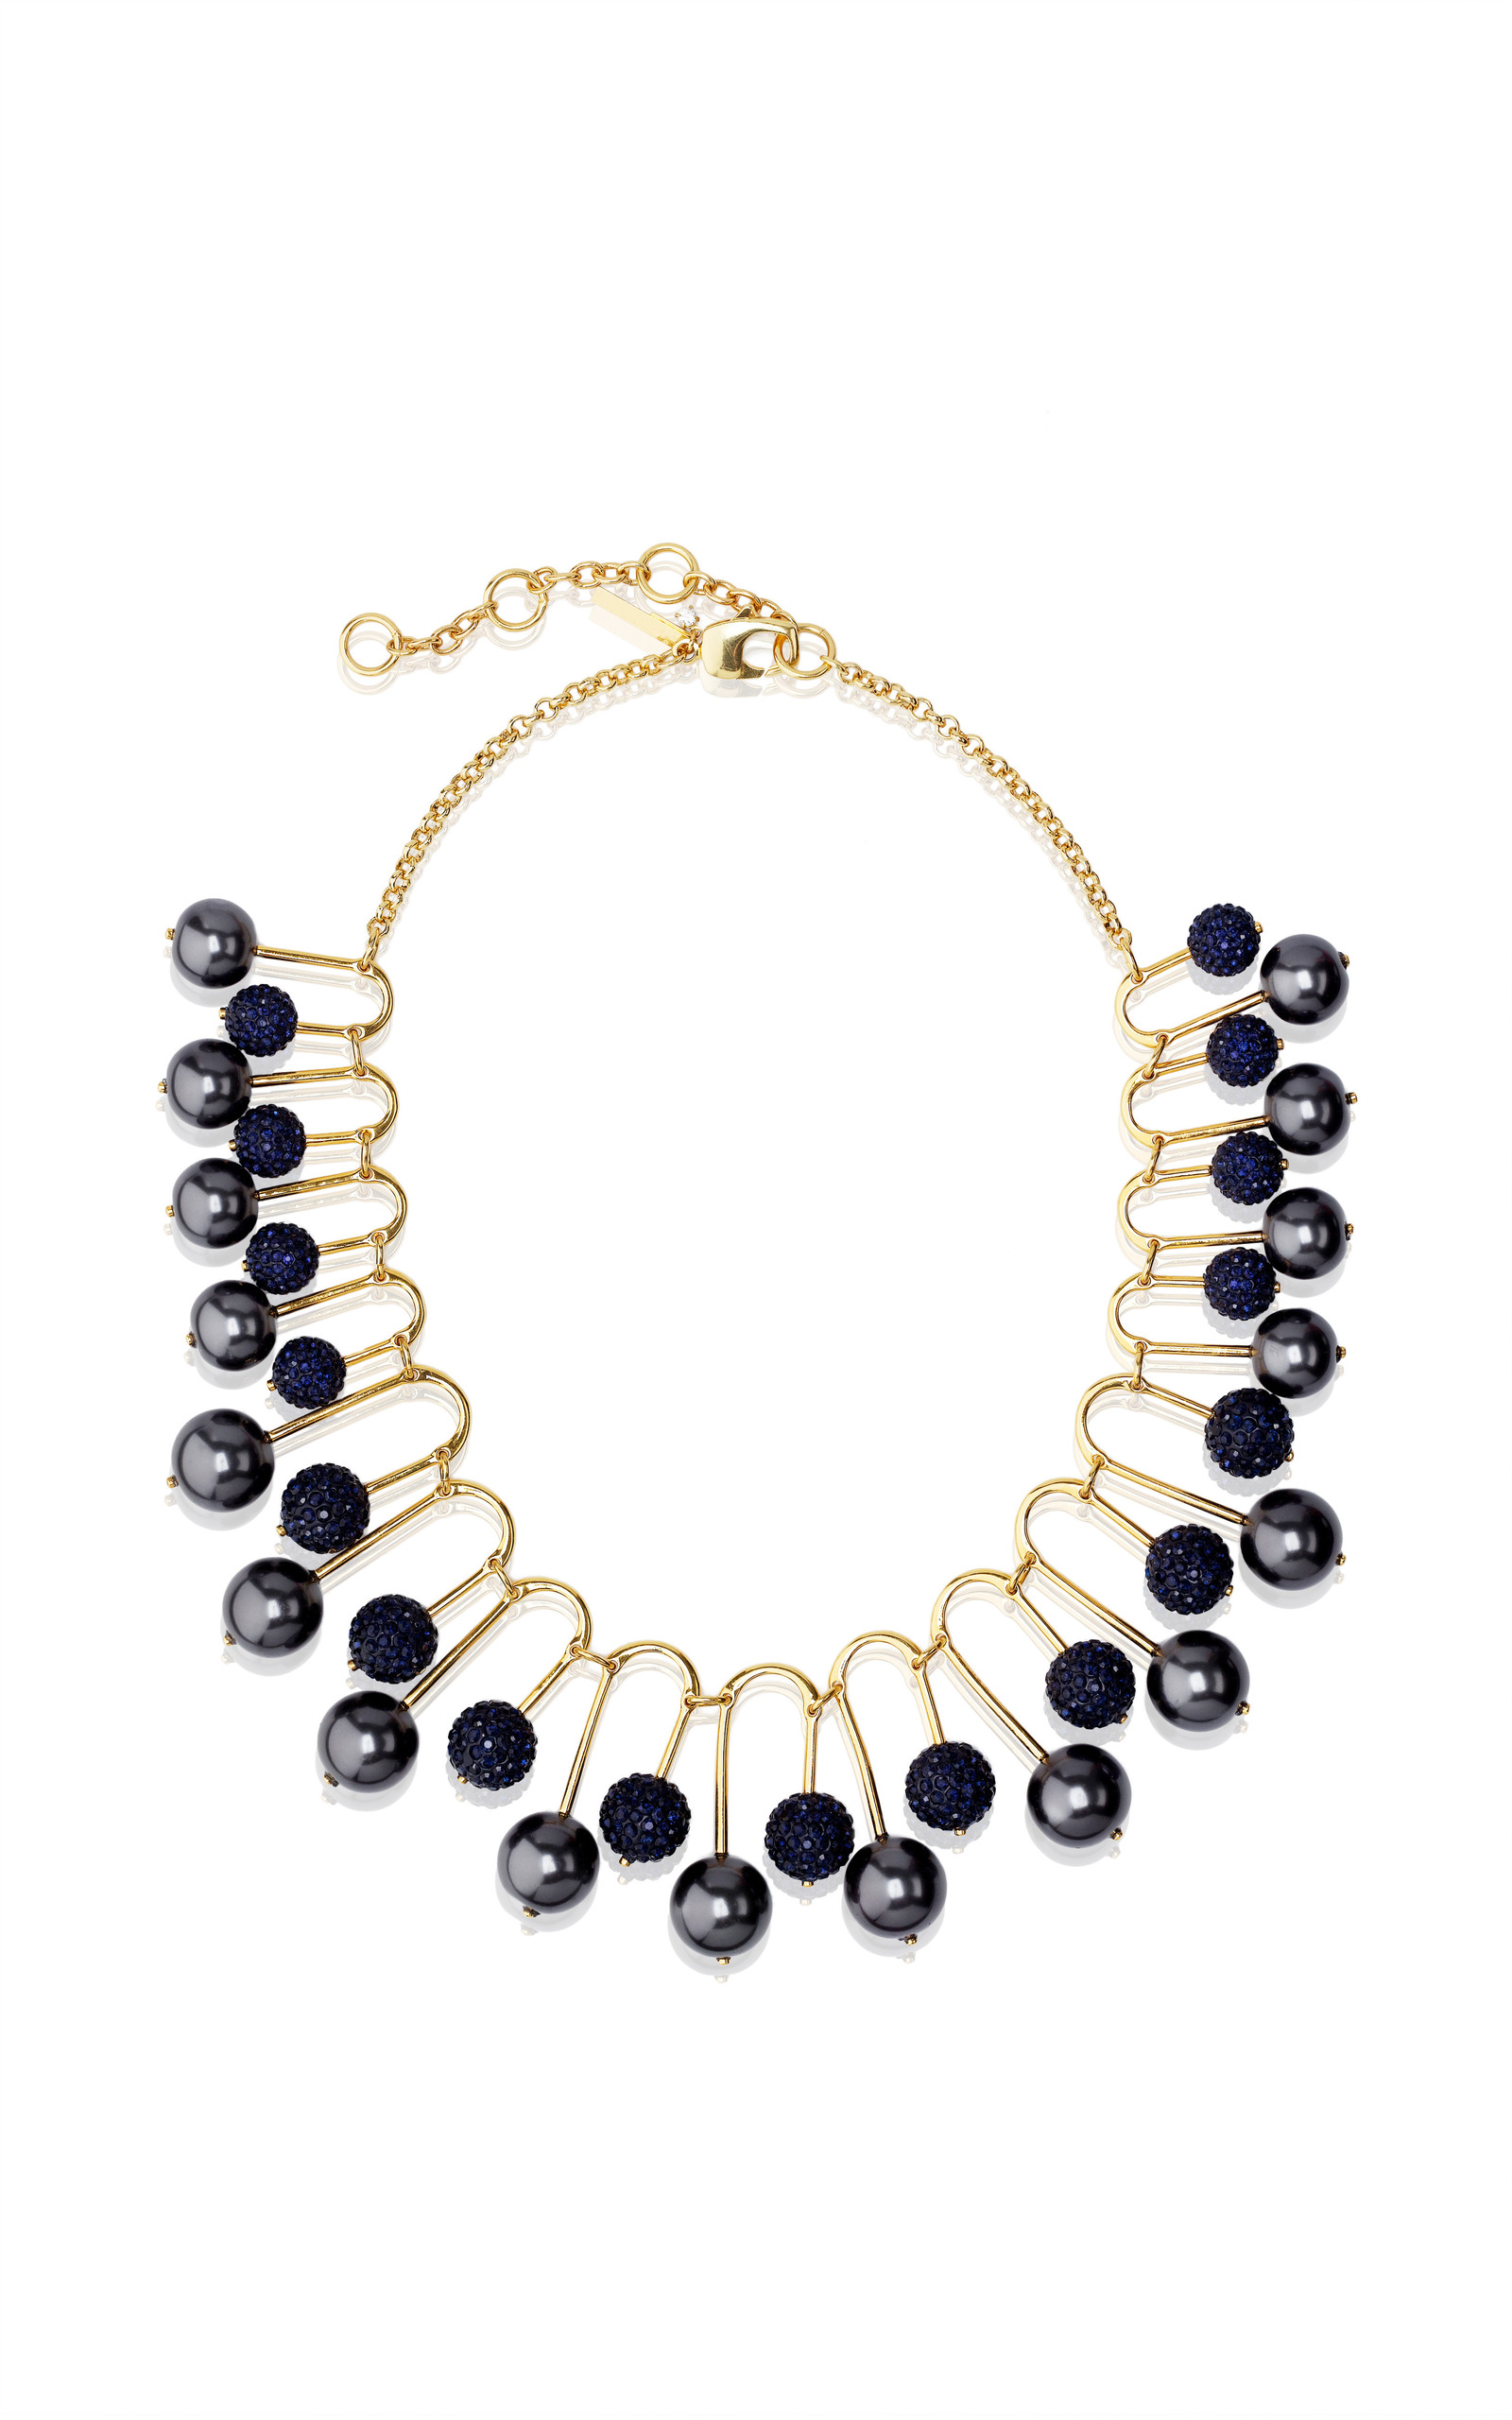 Lele Sadoughi Howlite Beaded Fan Necklace bhkvb